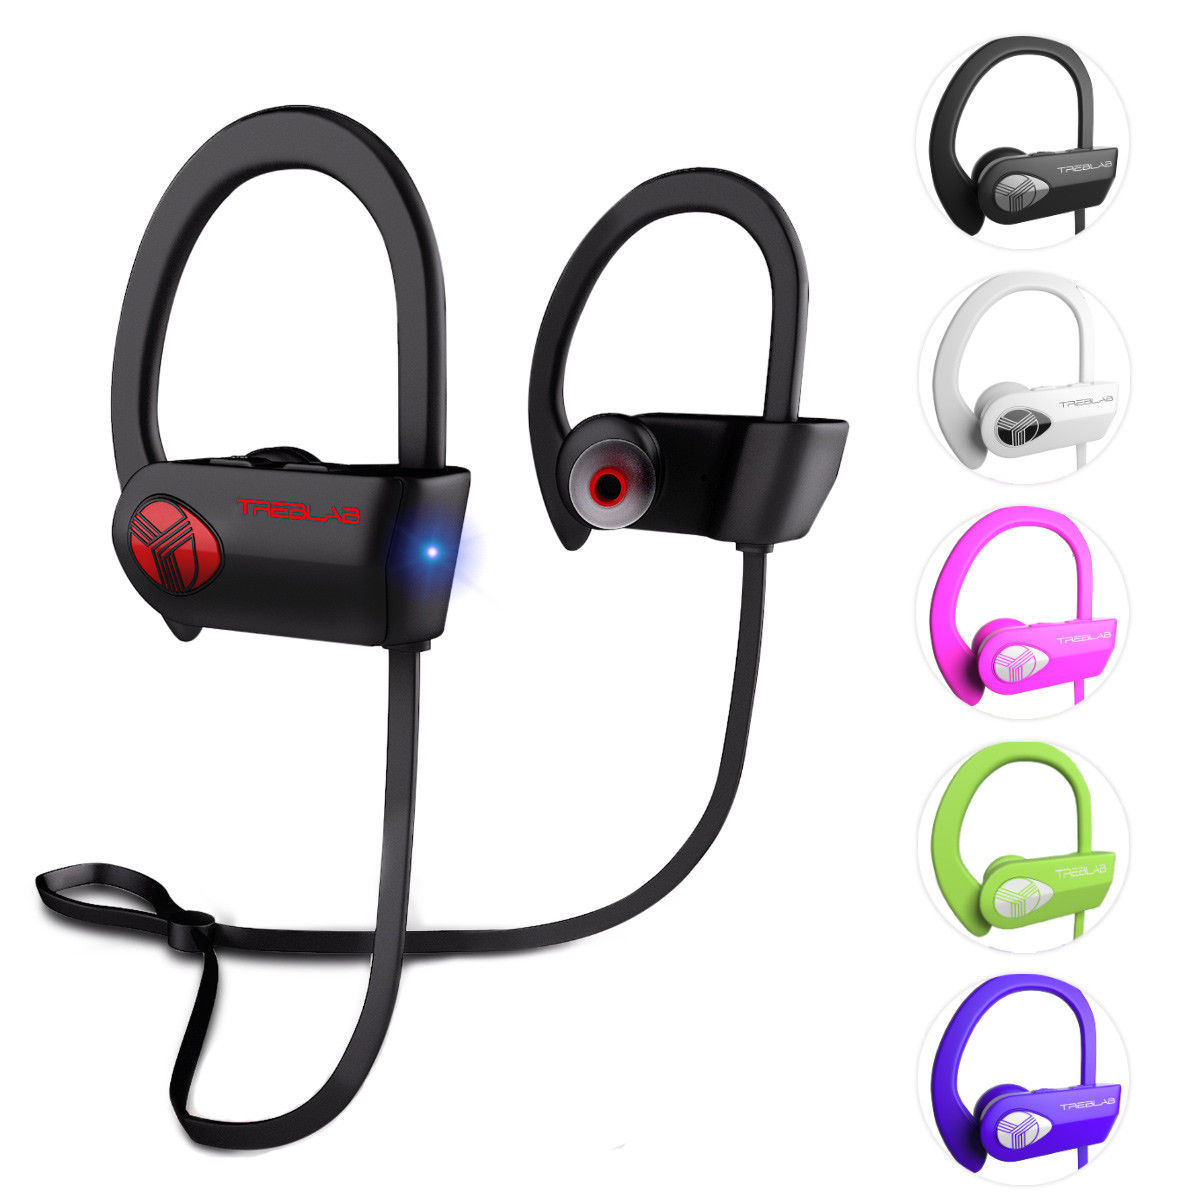 Wireless bluetooth headphones treblab - wireless headphones sports bluetooth